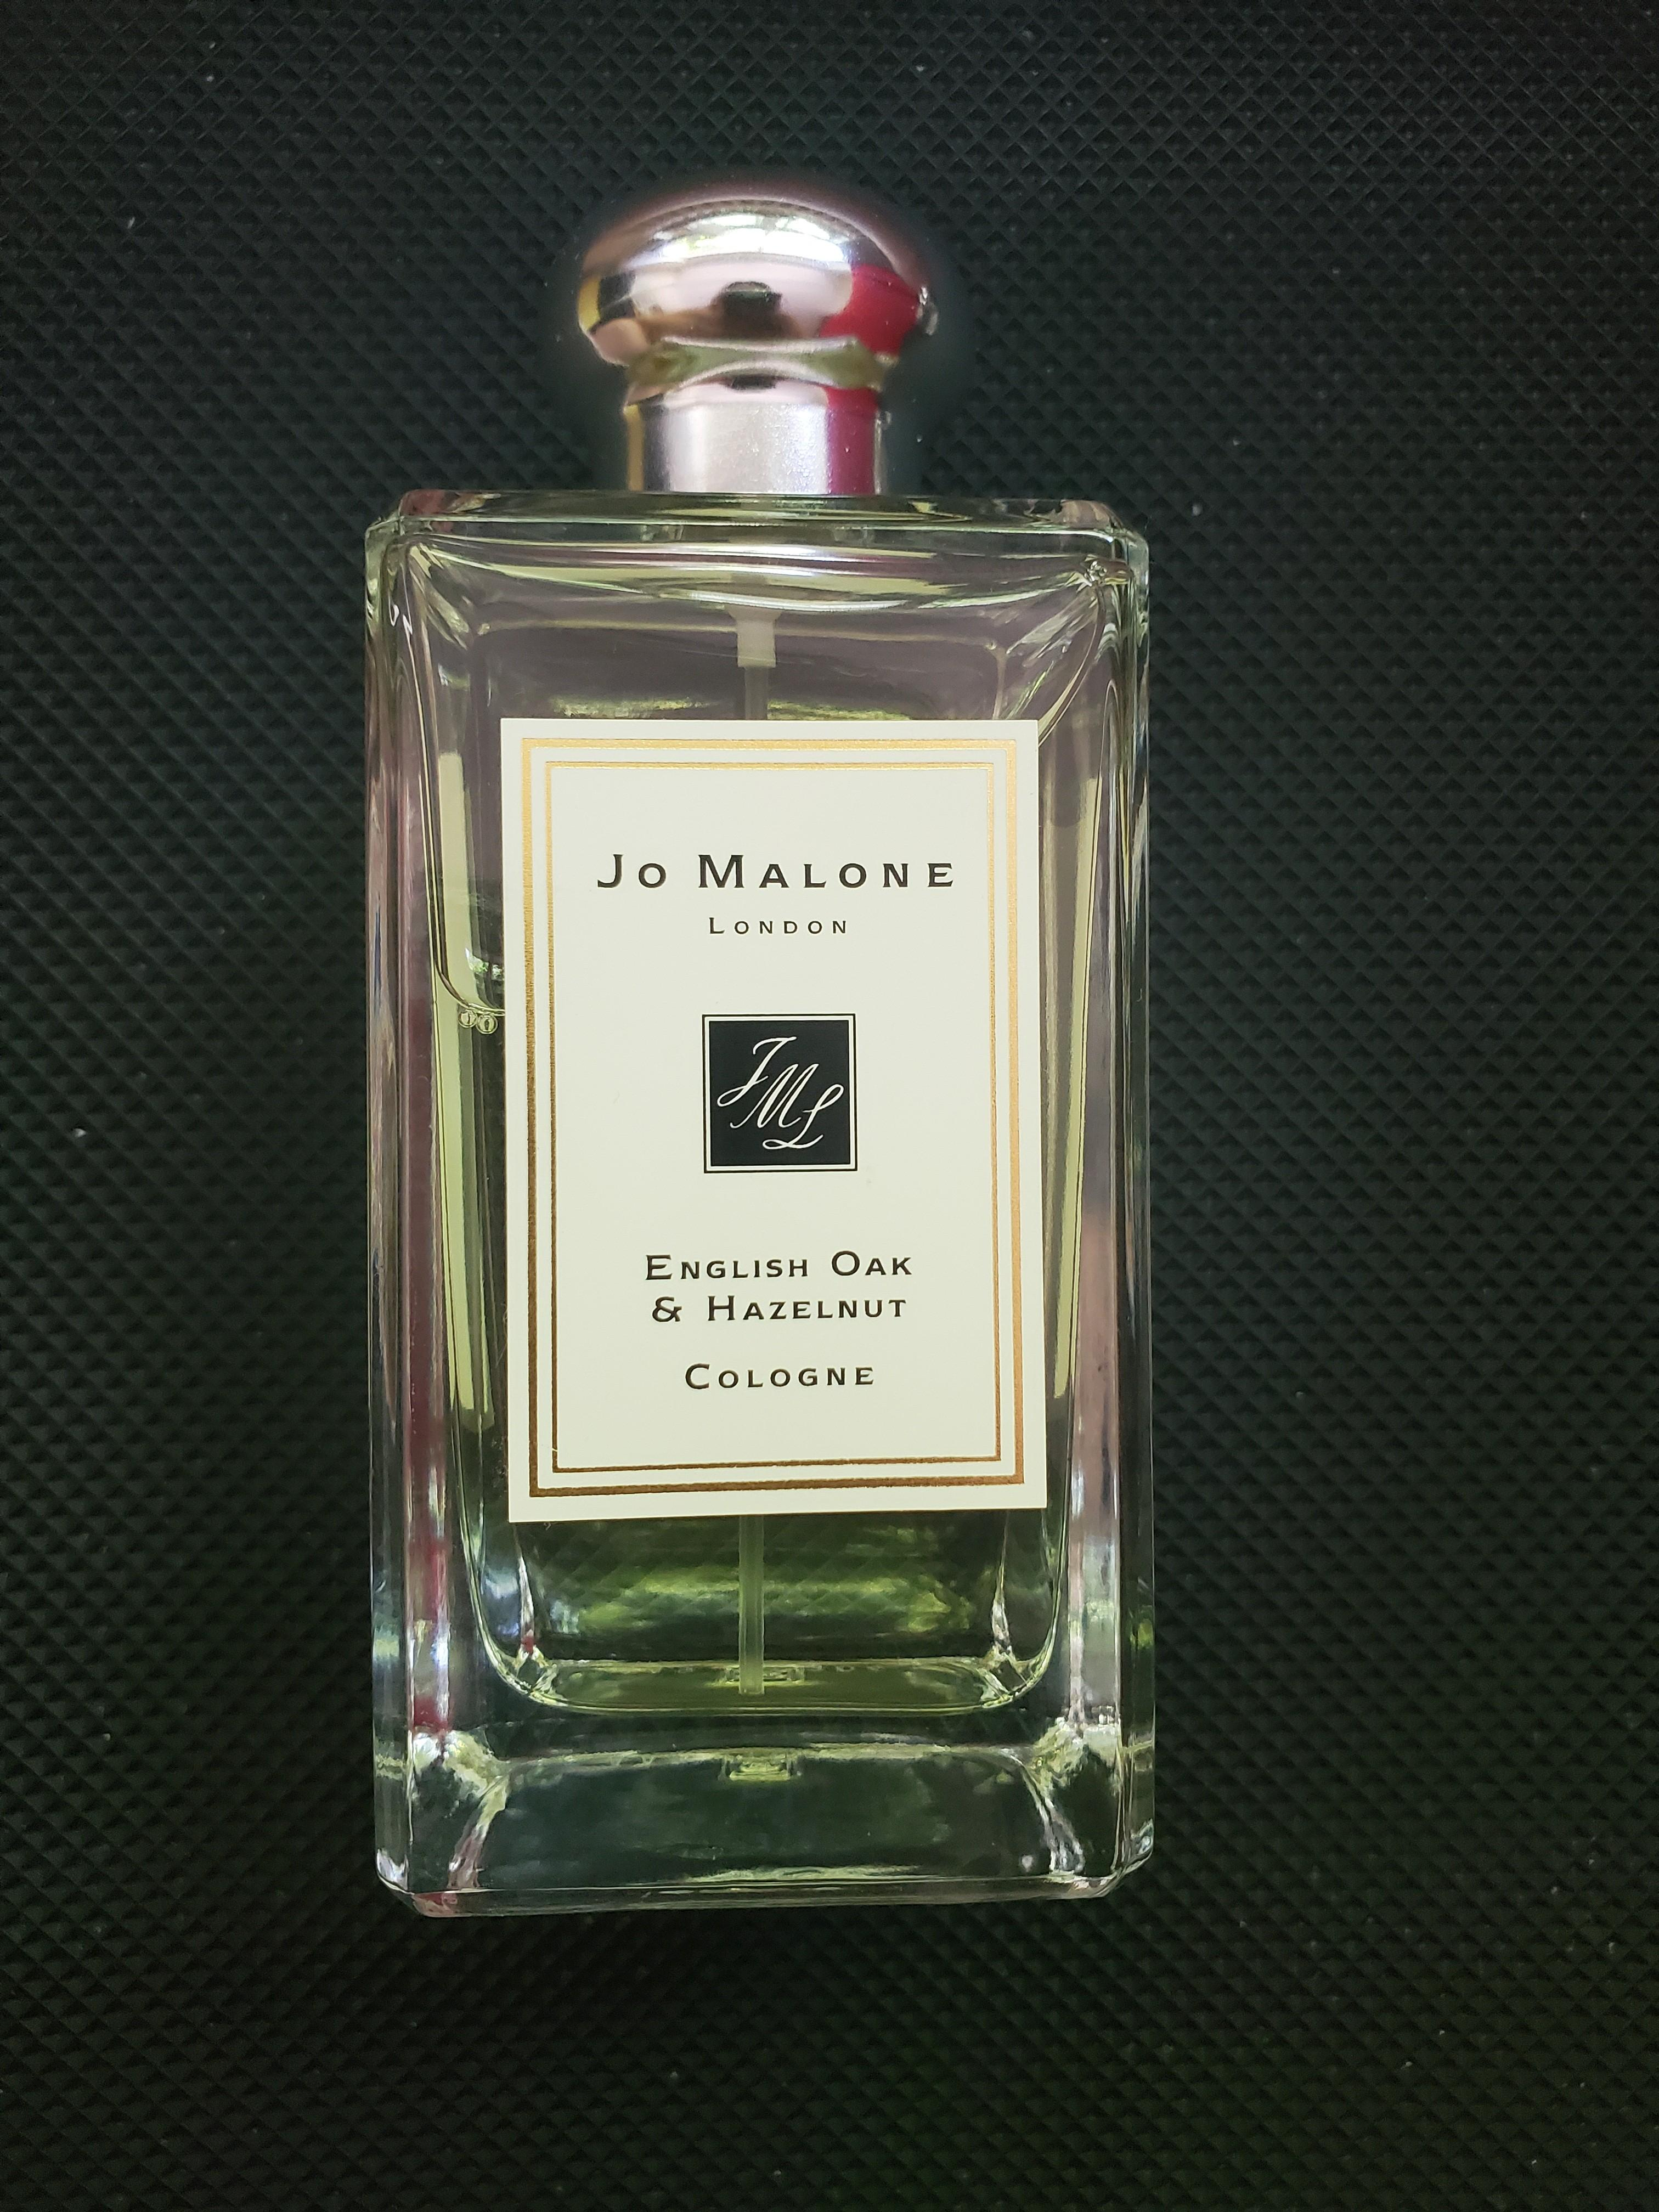 Jo Malone English oak and hazelnut